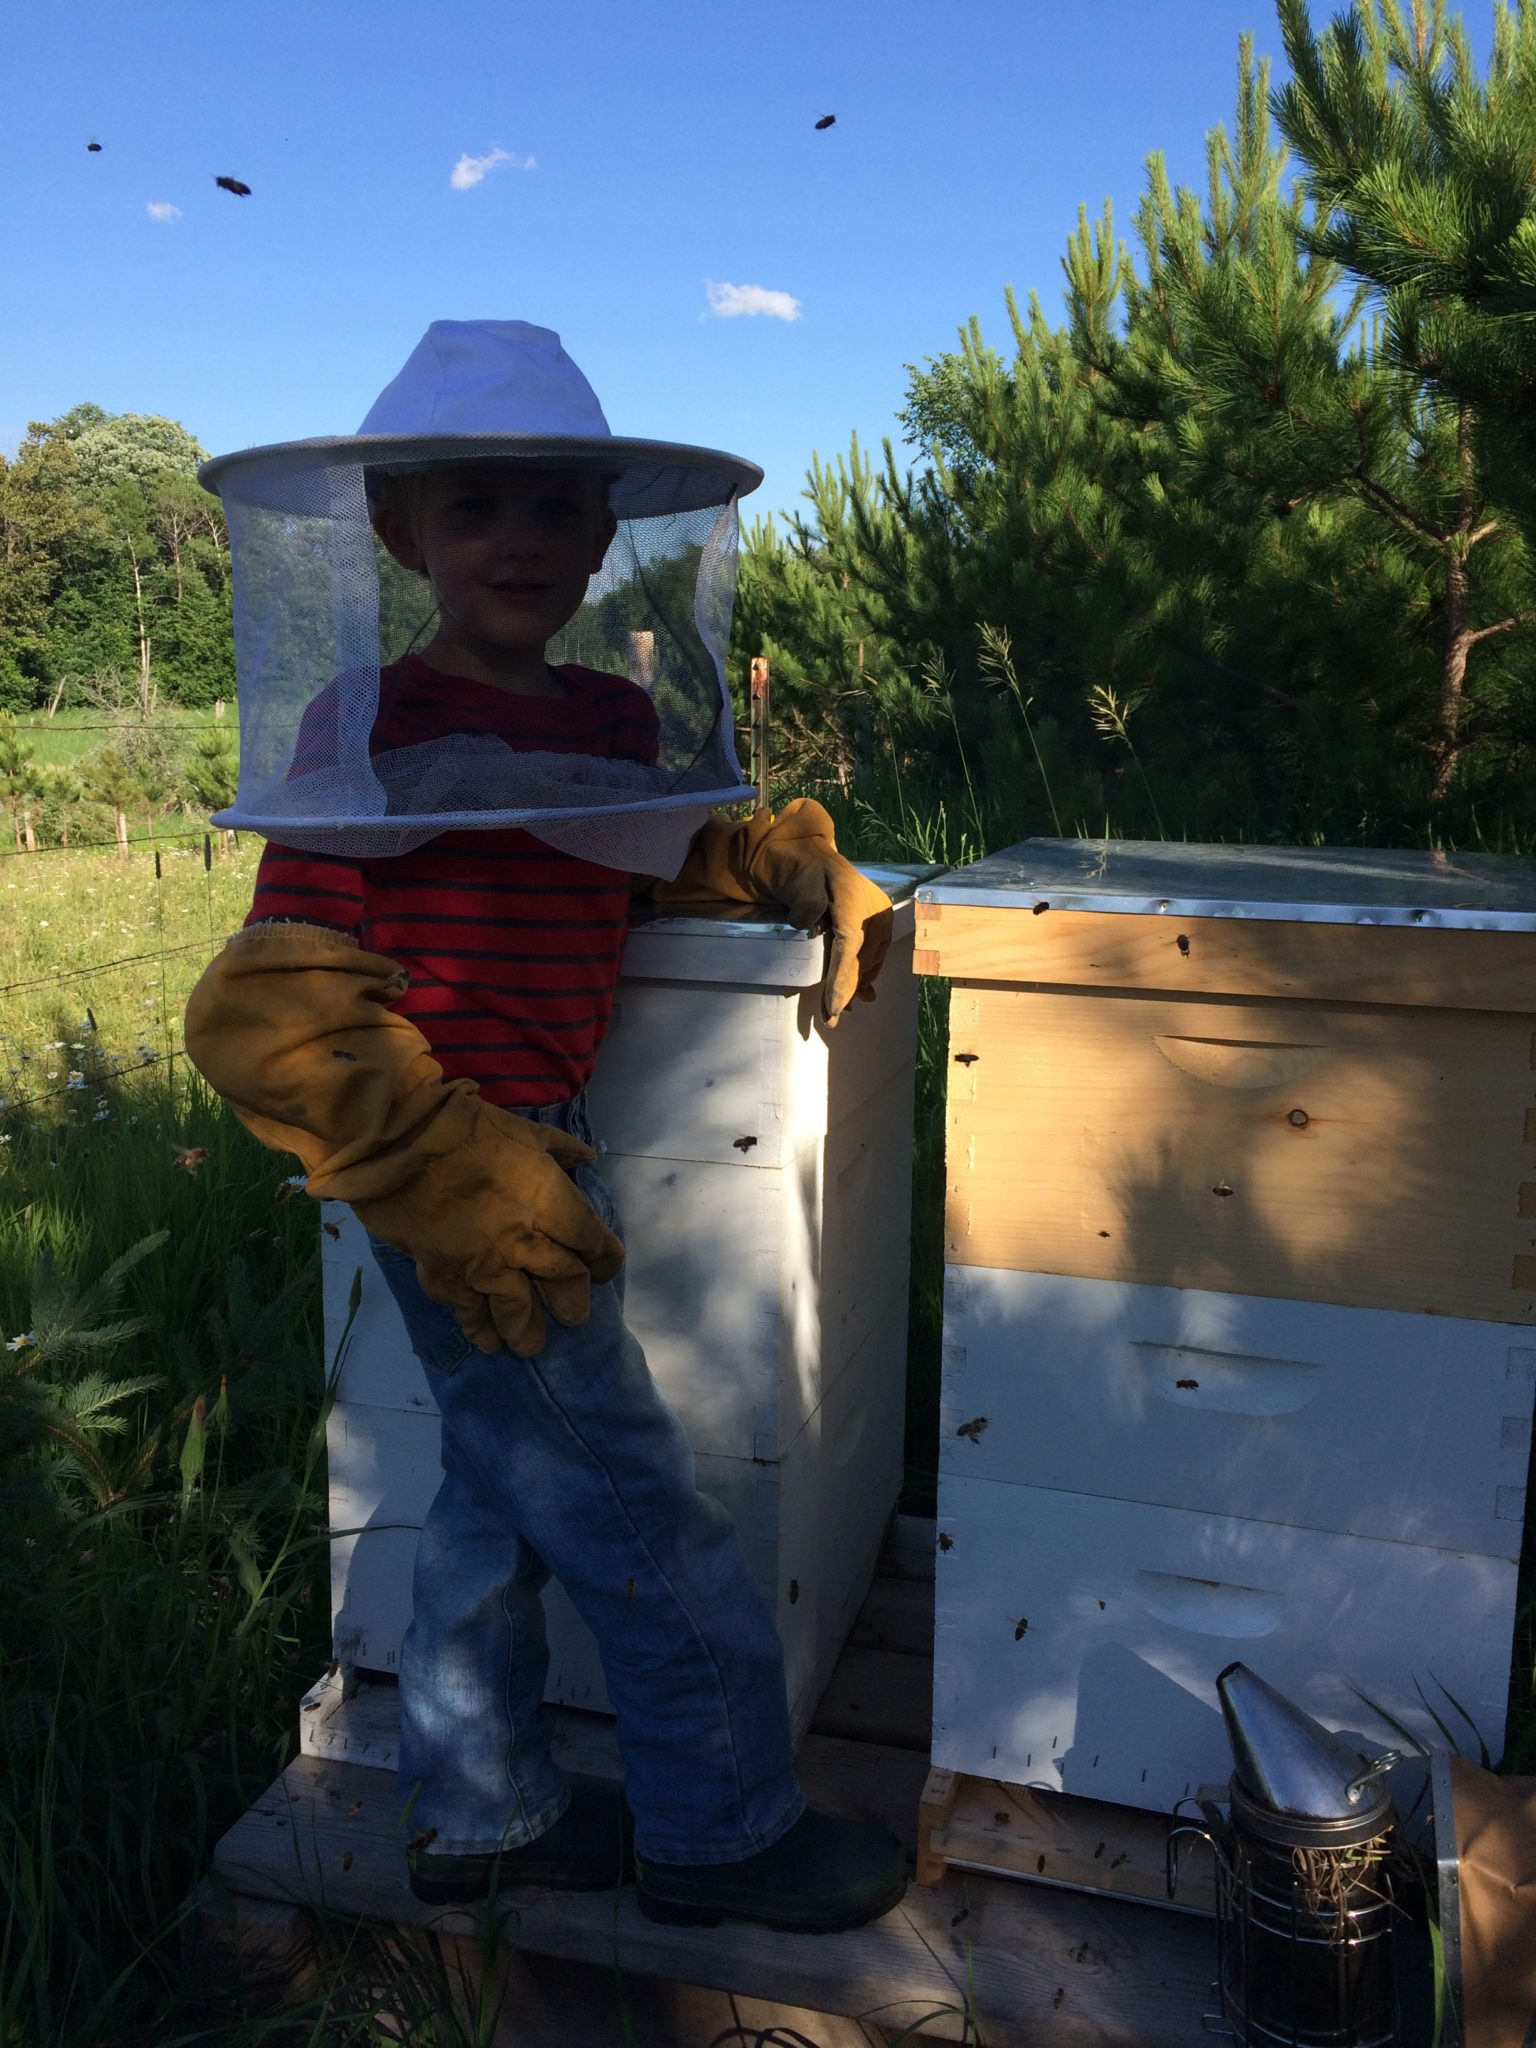 little boy around 7 years old wearing protective bee keeping gear standing by hive boxes